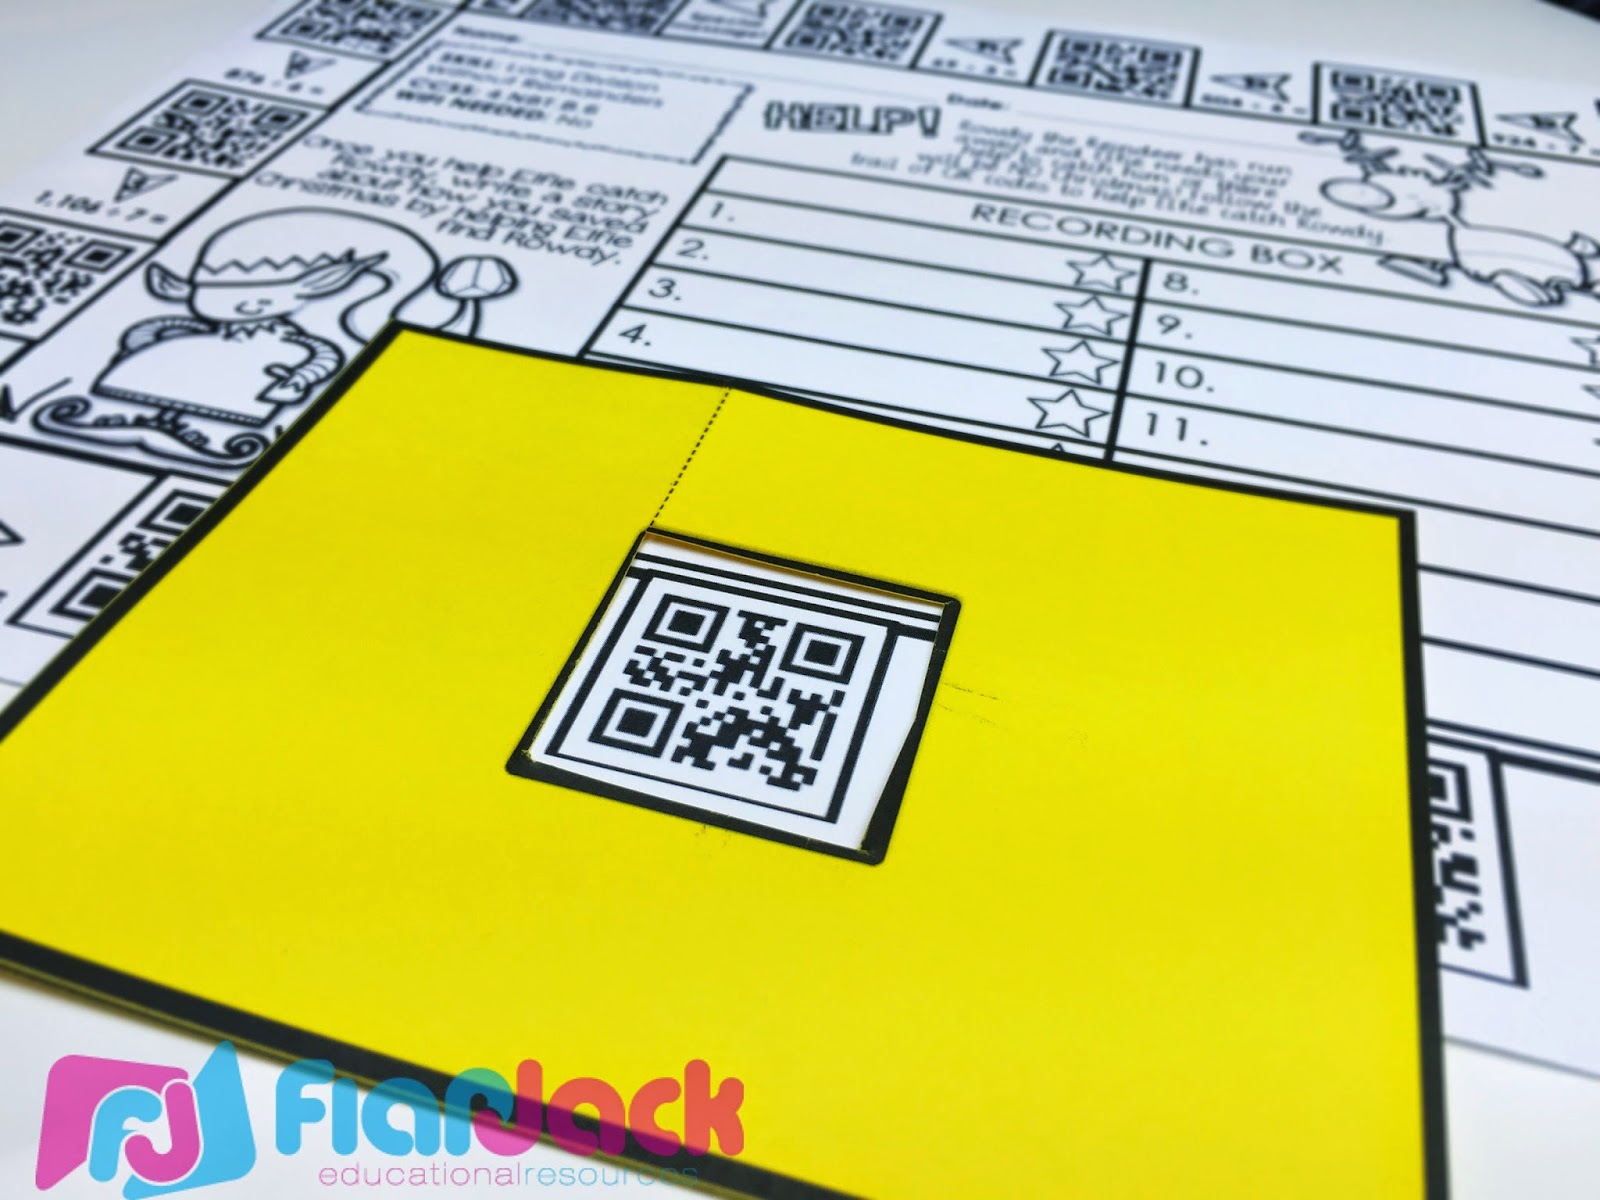 Flapjack Educational Resources Holiday Qr Code Printables